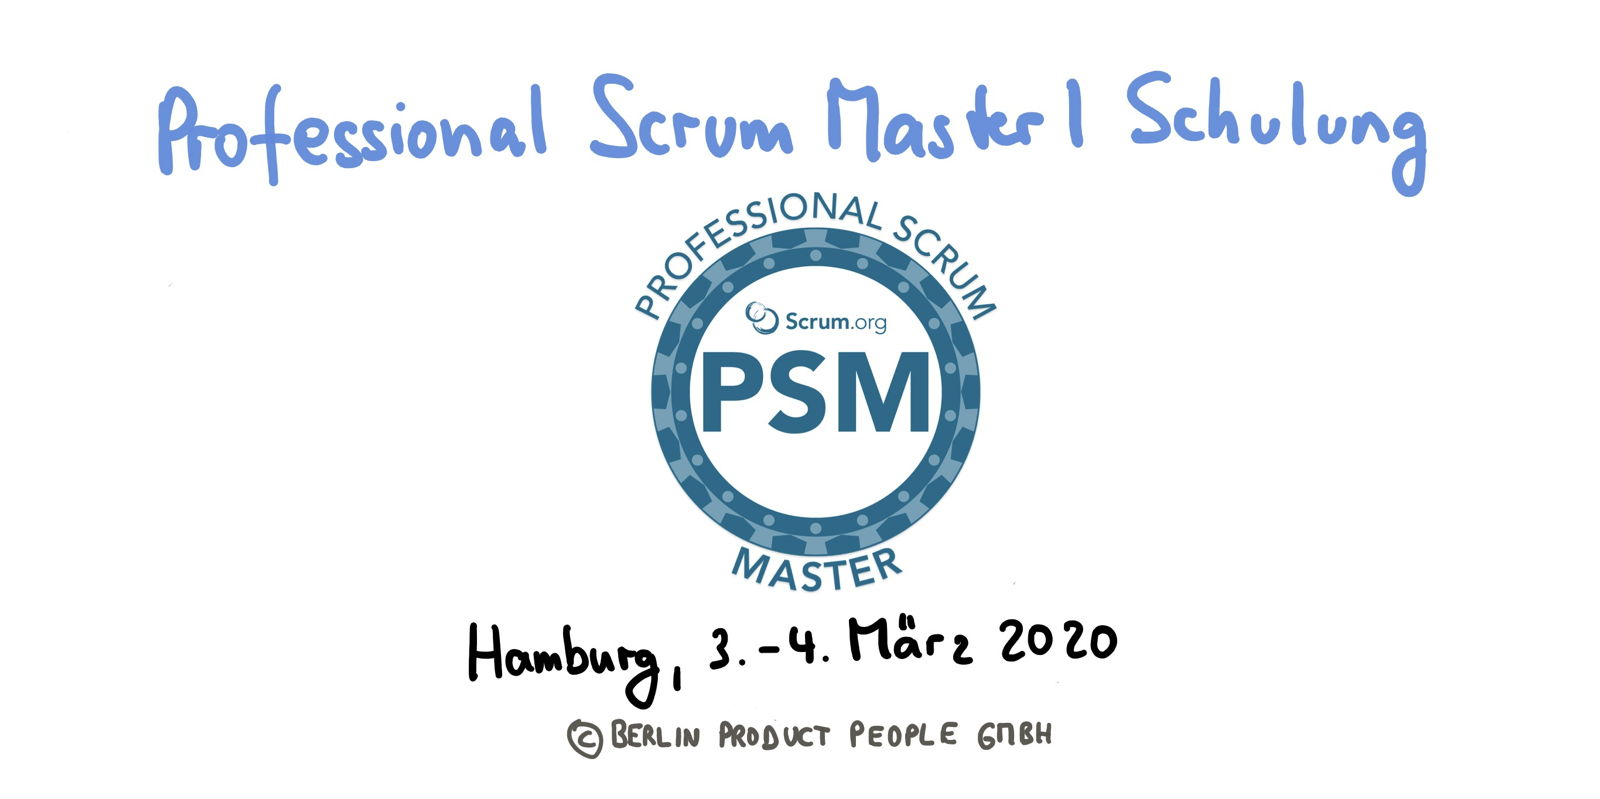 📅 Professional Scrum Master Training PSM I — Hamburg, March 3-4, 2020